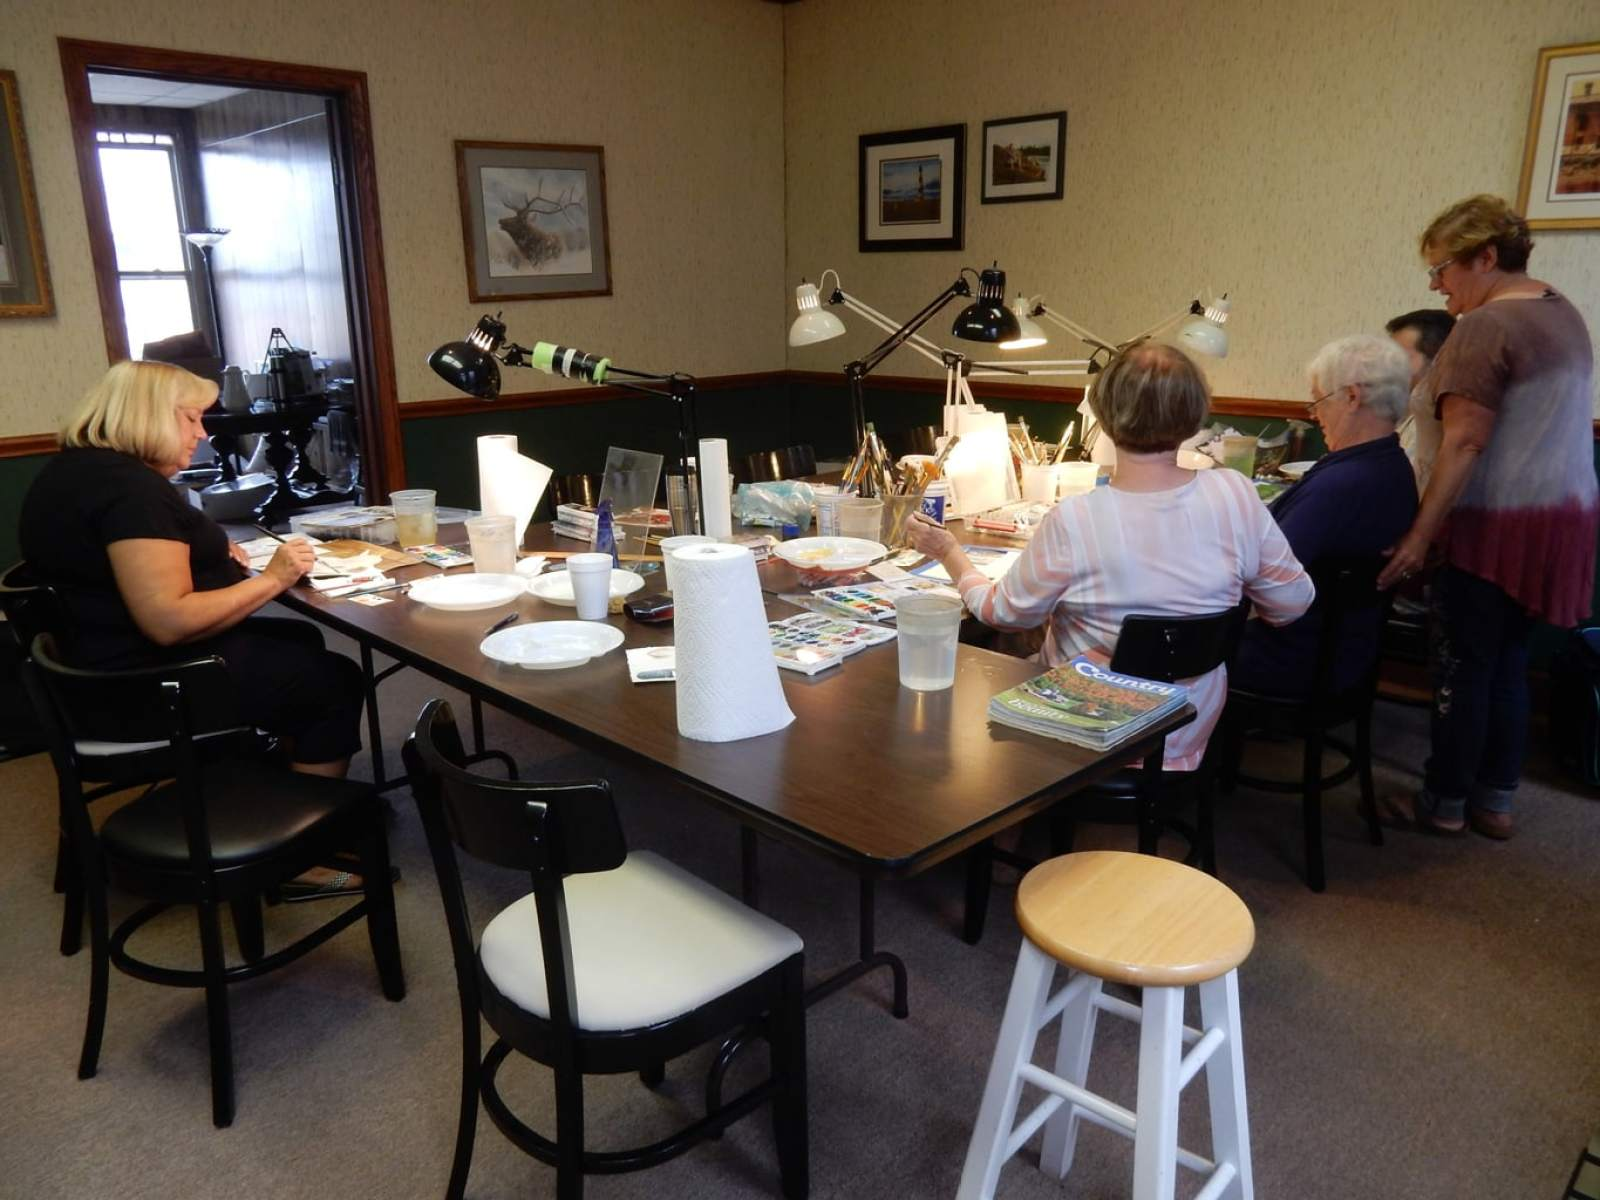 Perry Winkler Watercolor Class, Dubois PA